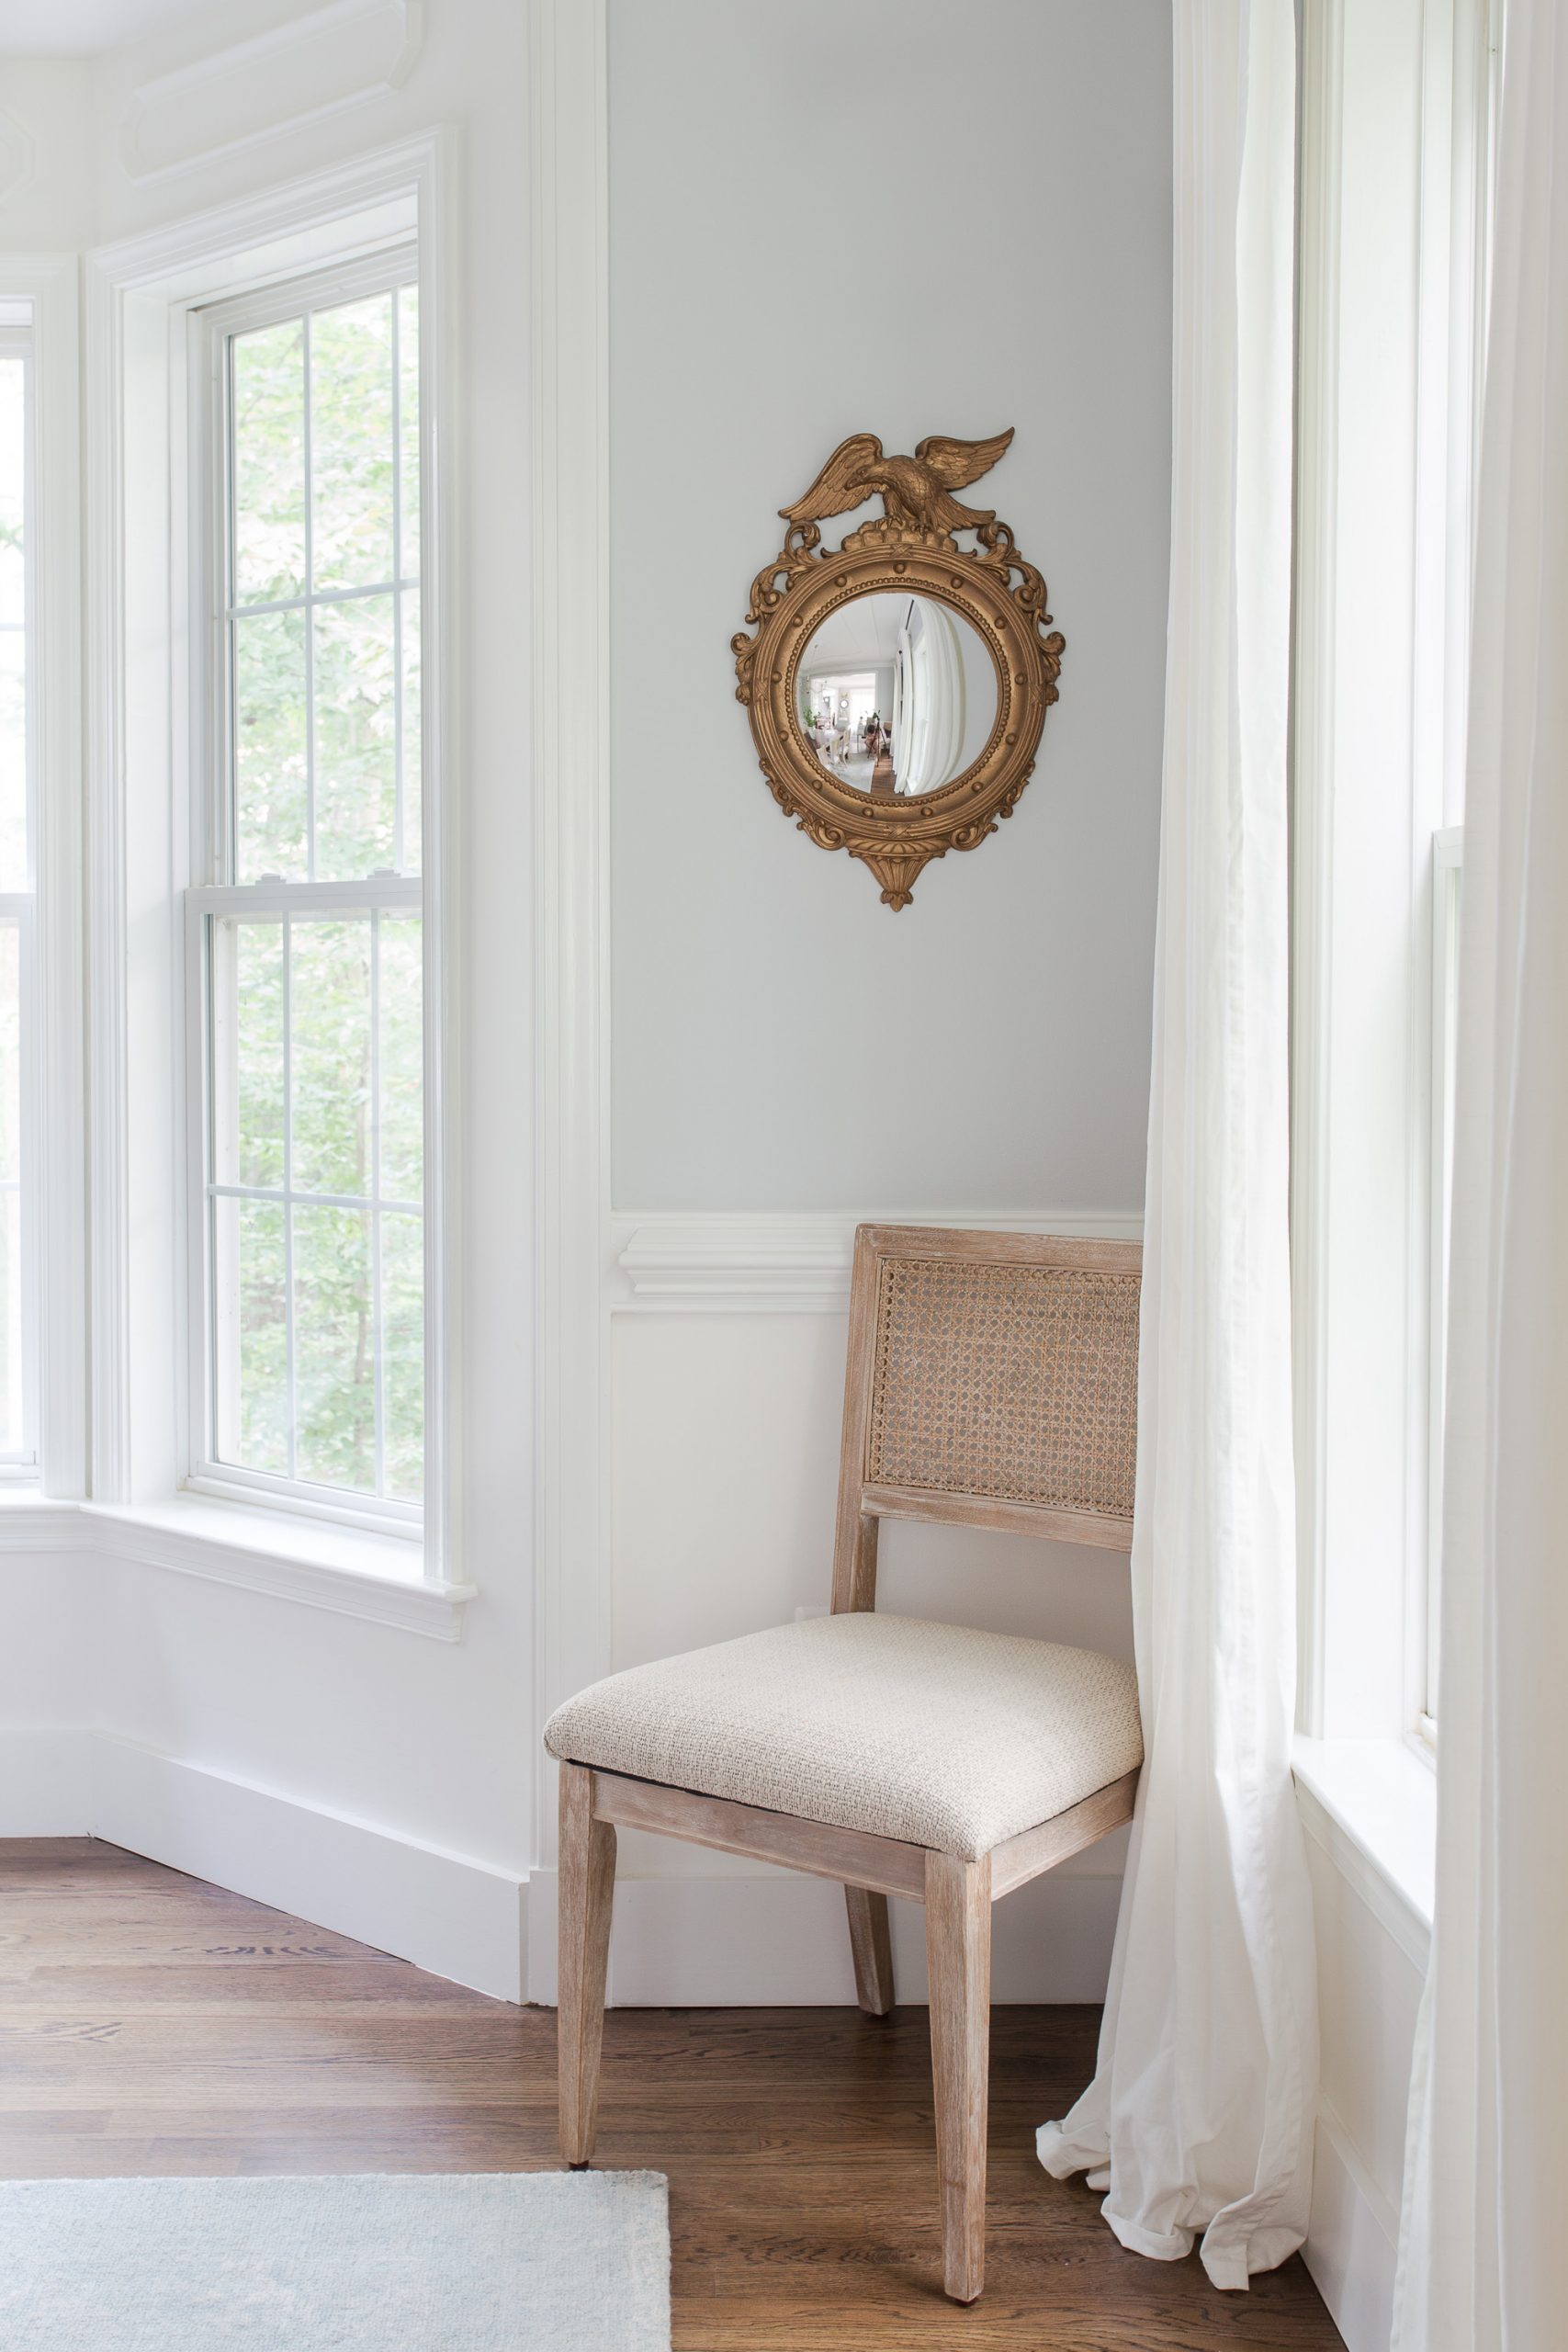 round gold mirror hanging on wall with a chair sitting underneath